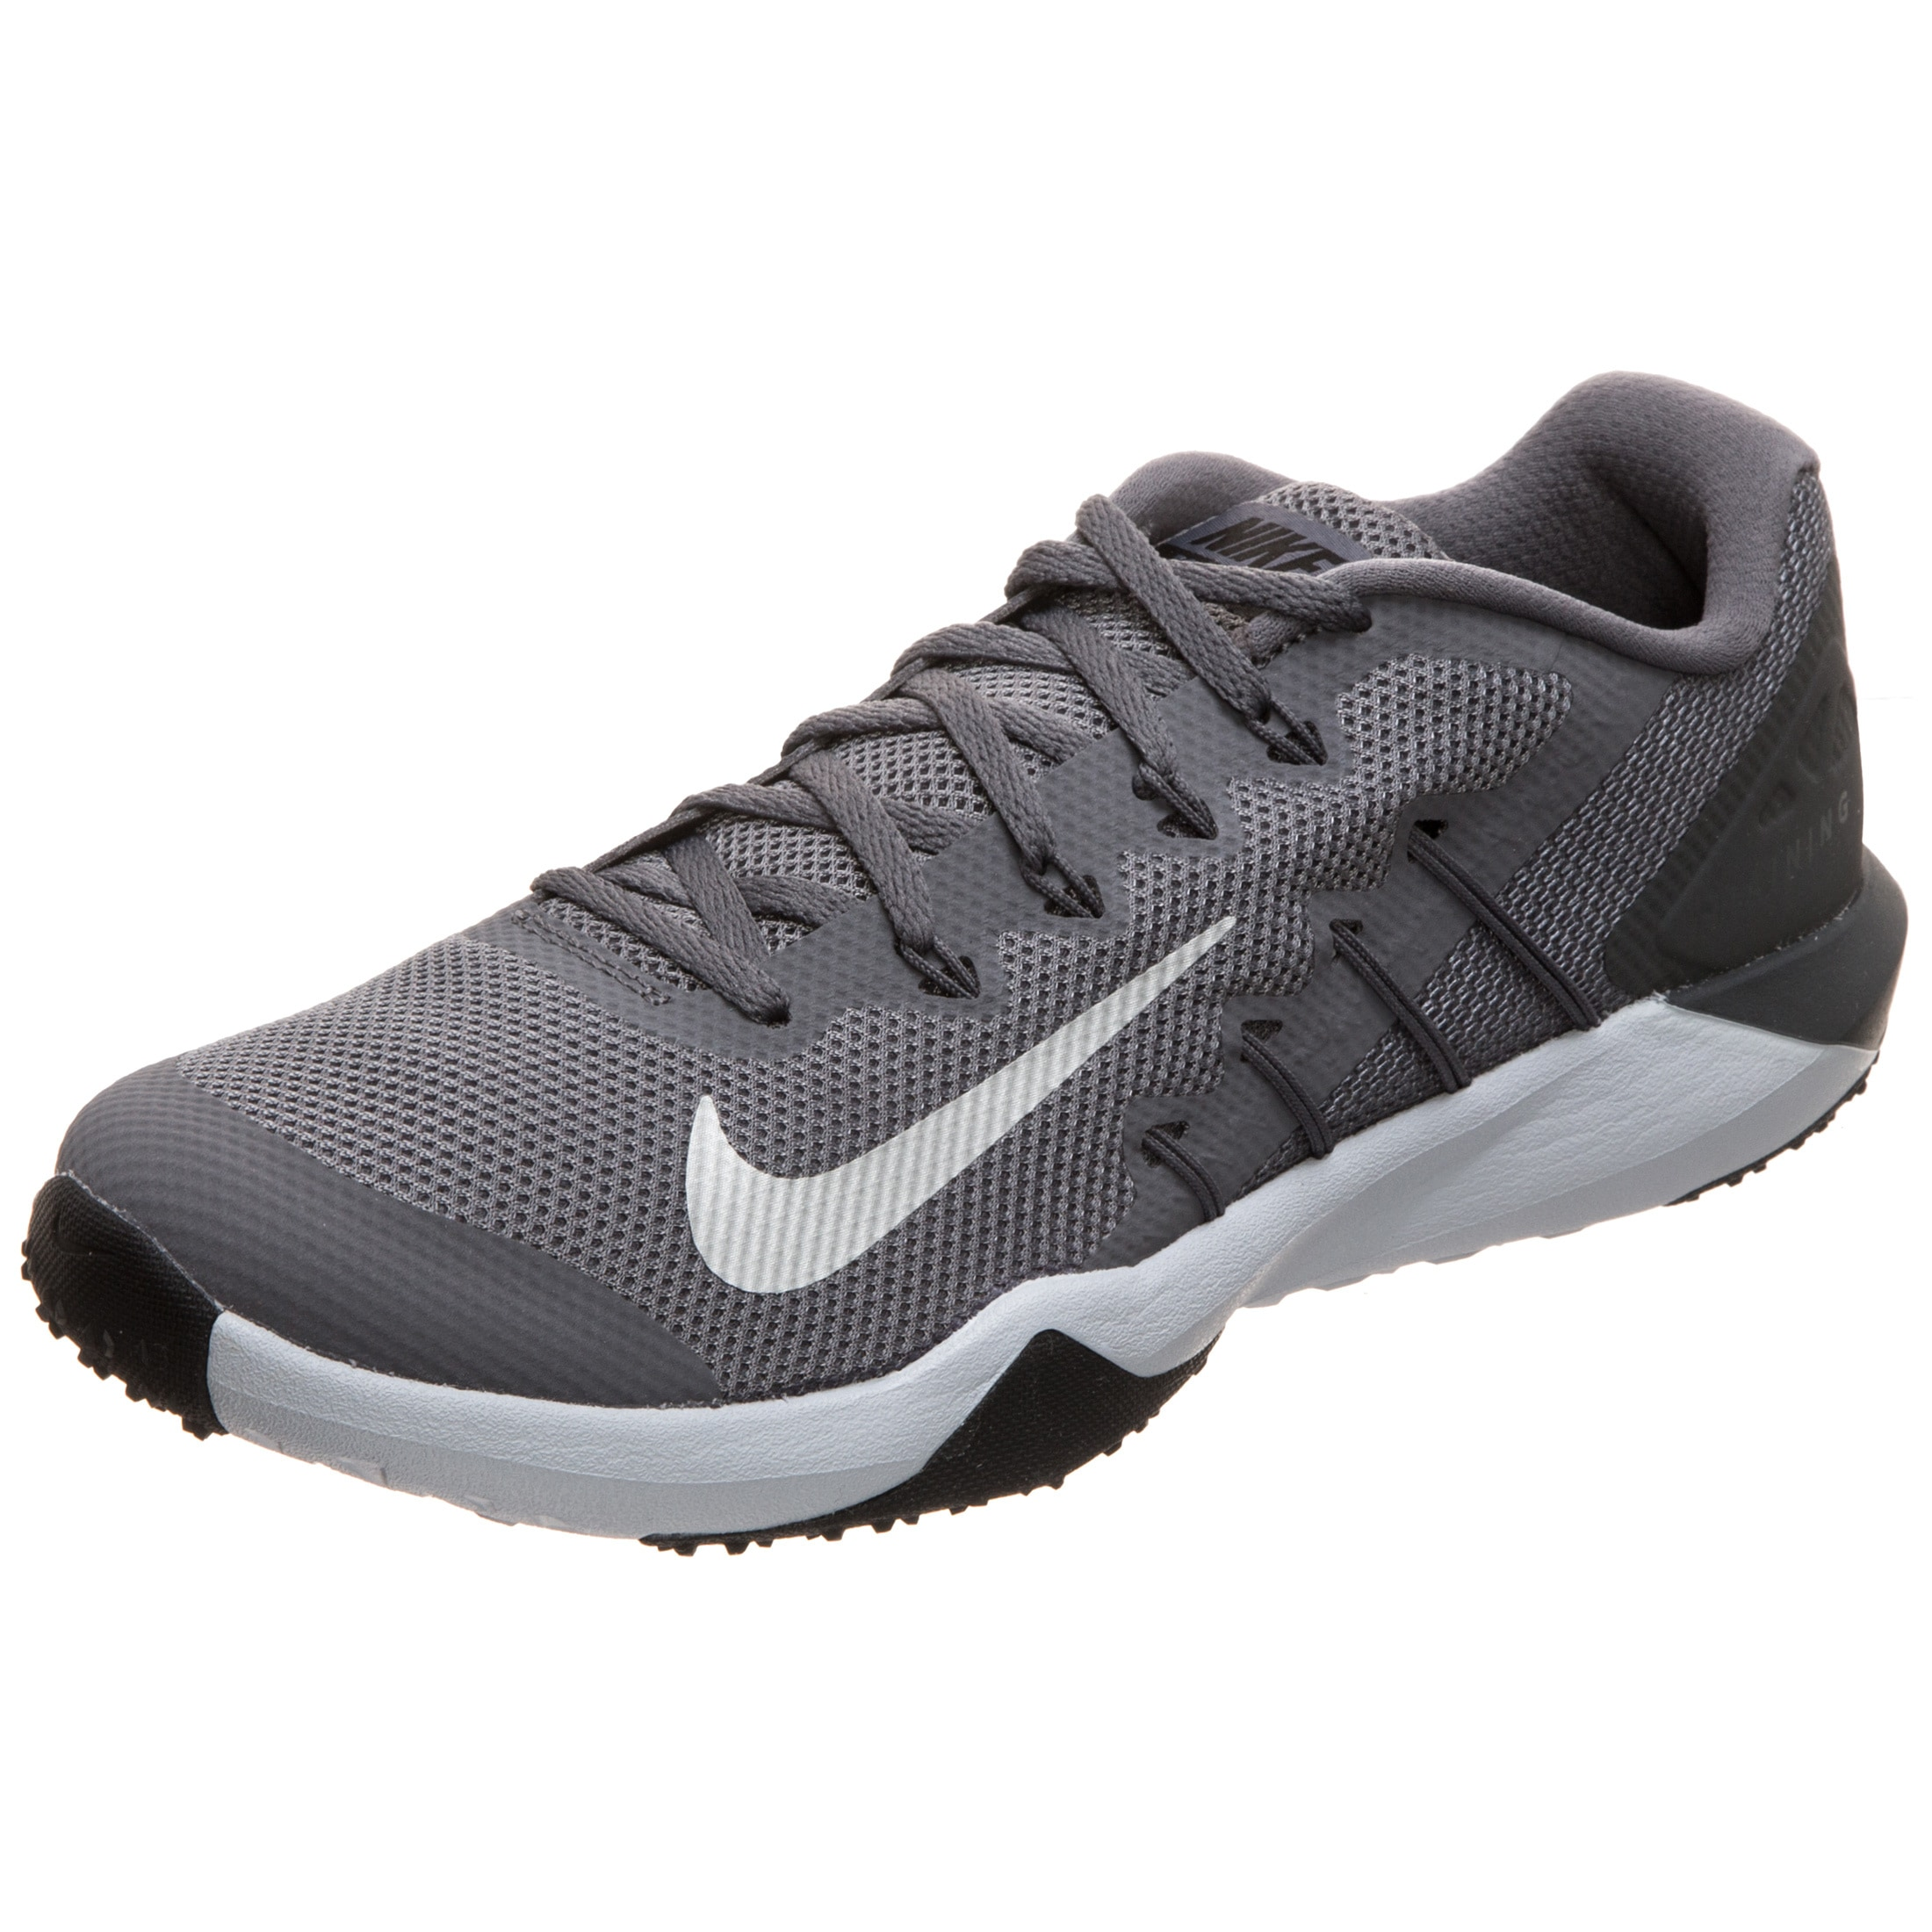 Nike Trainingsschuh Retaliation Tr 2